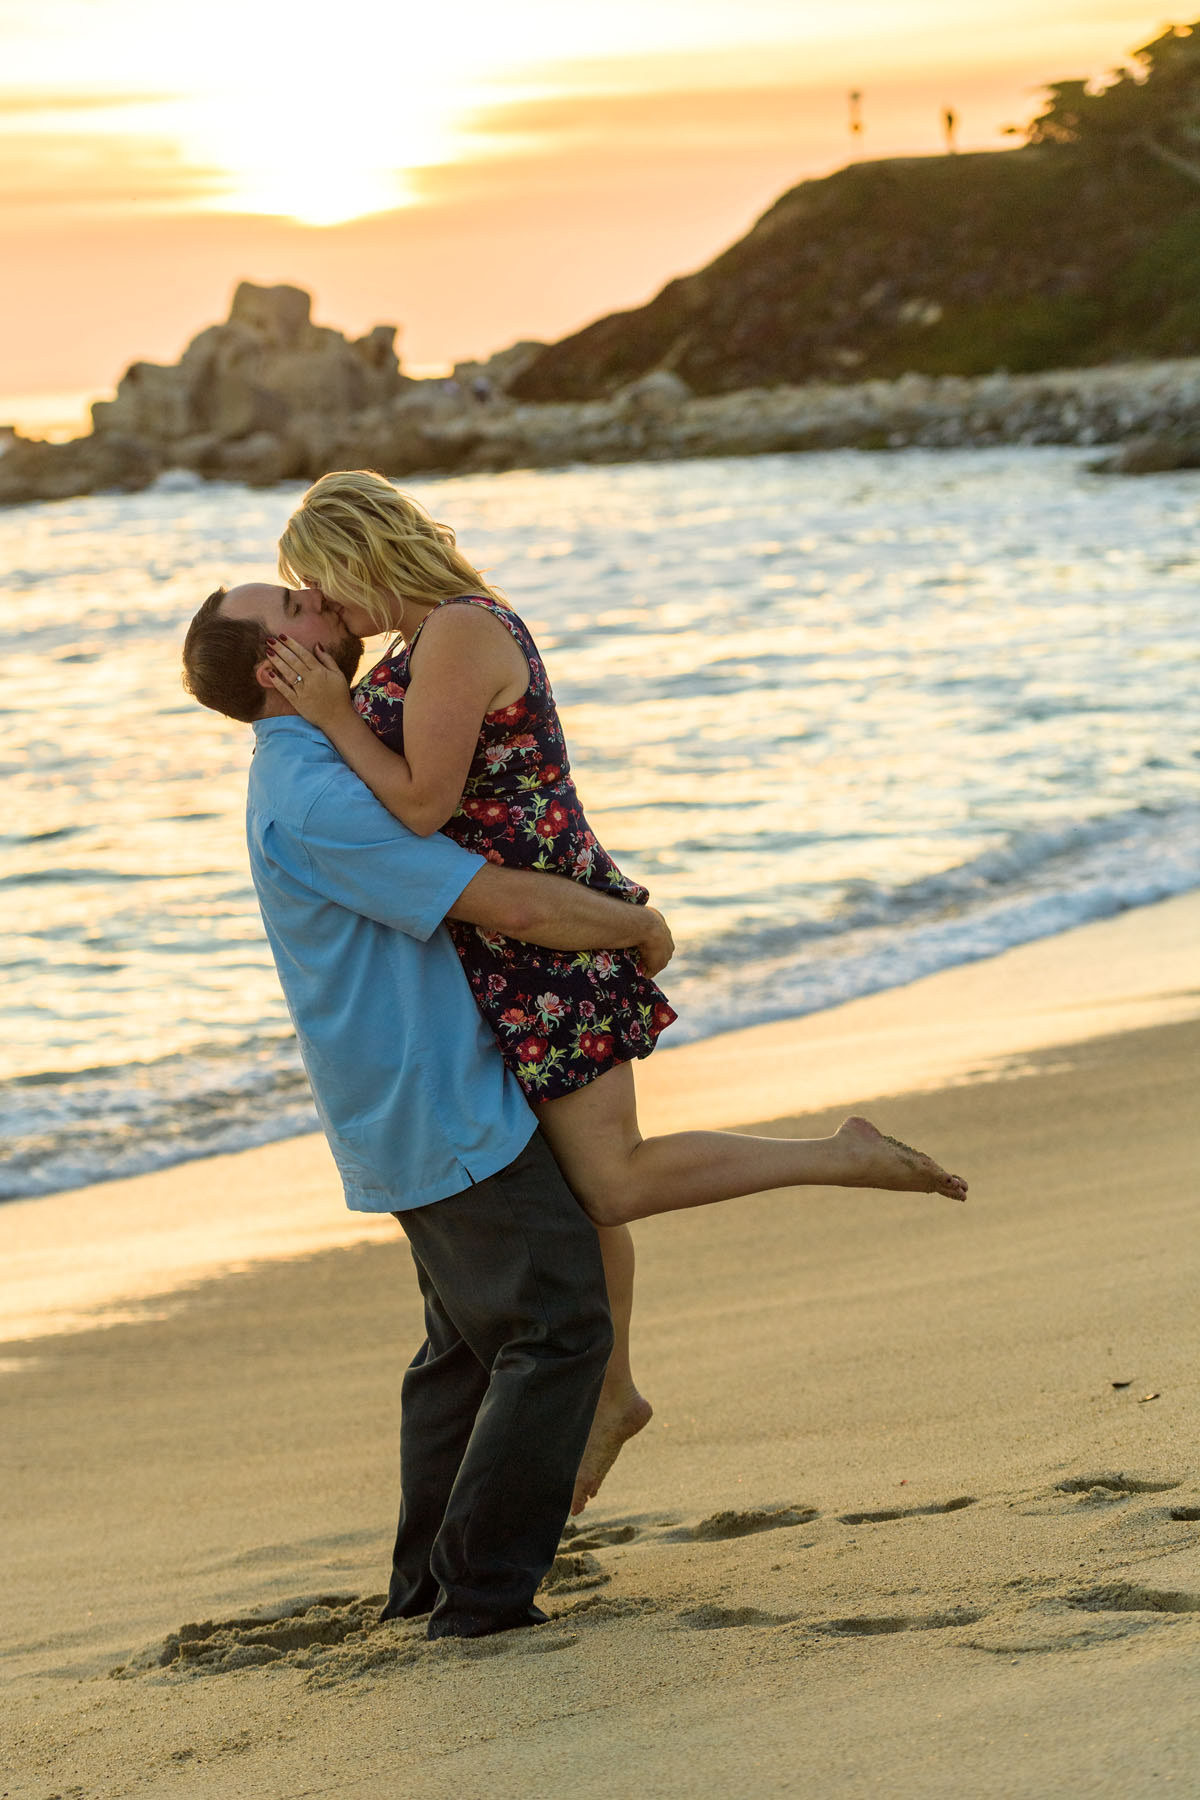 lifting his fiance up and kissing on beach at sunset - Stewart's Cove - Carmel Engagement Photography - photos by Bay Area wedding photographer Chris Schmauch